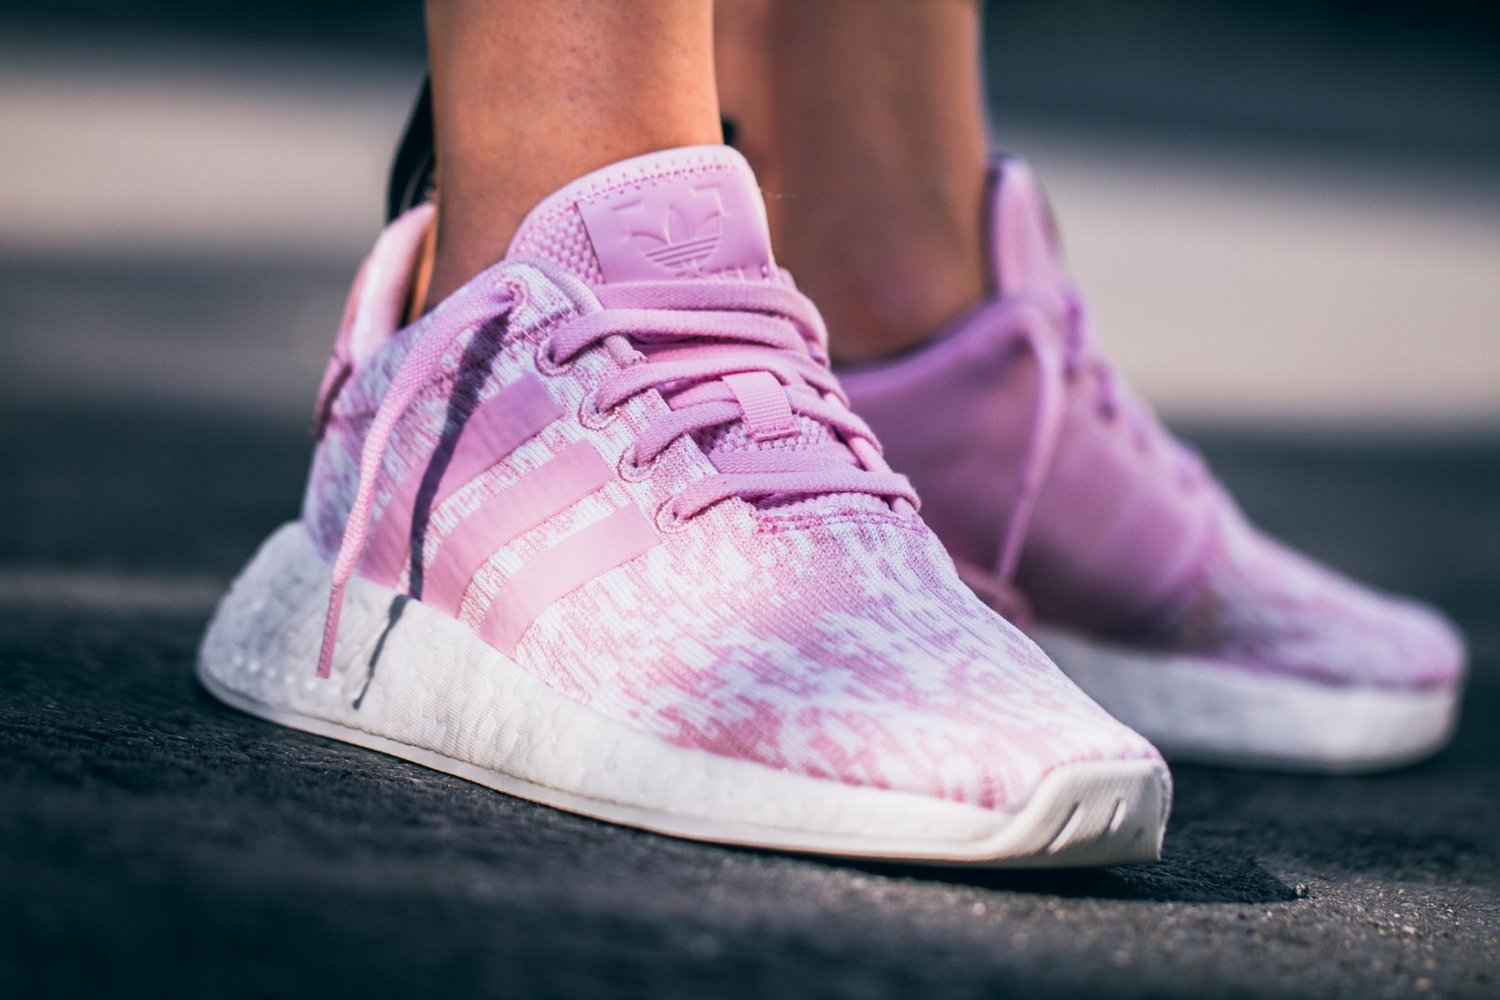 Now Available Women S Adidas Nmd R2 Knit Wonder Pink Sneaker Shouts